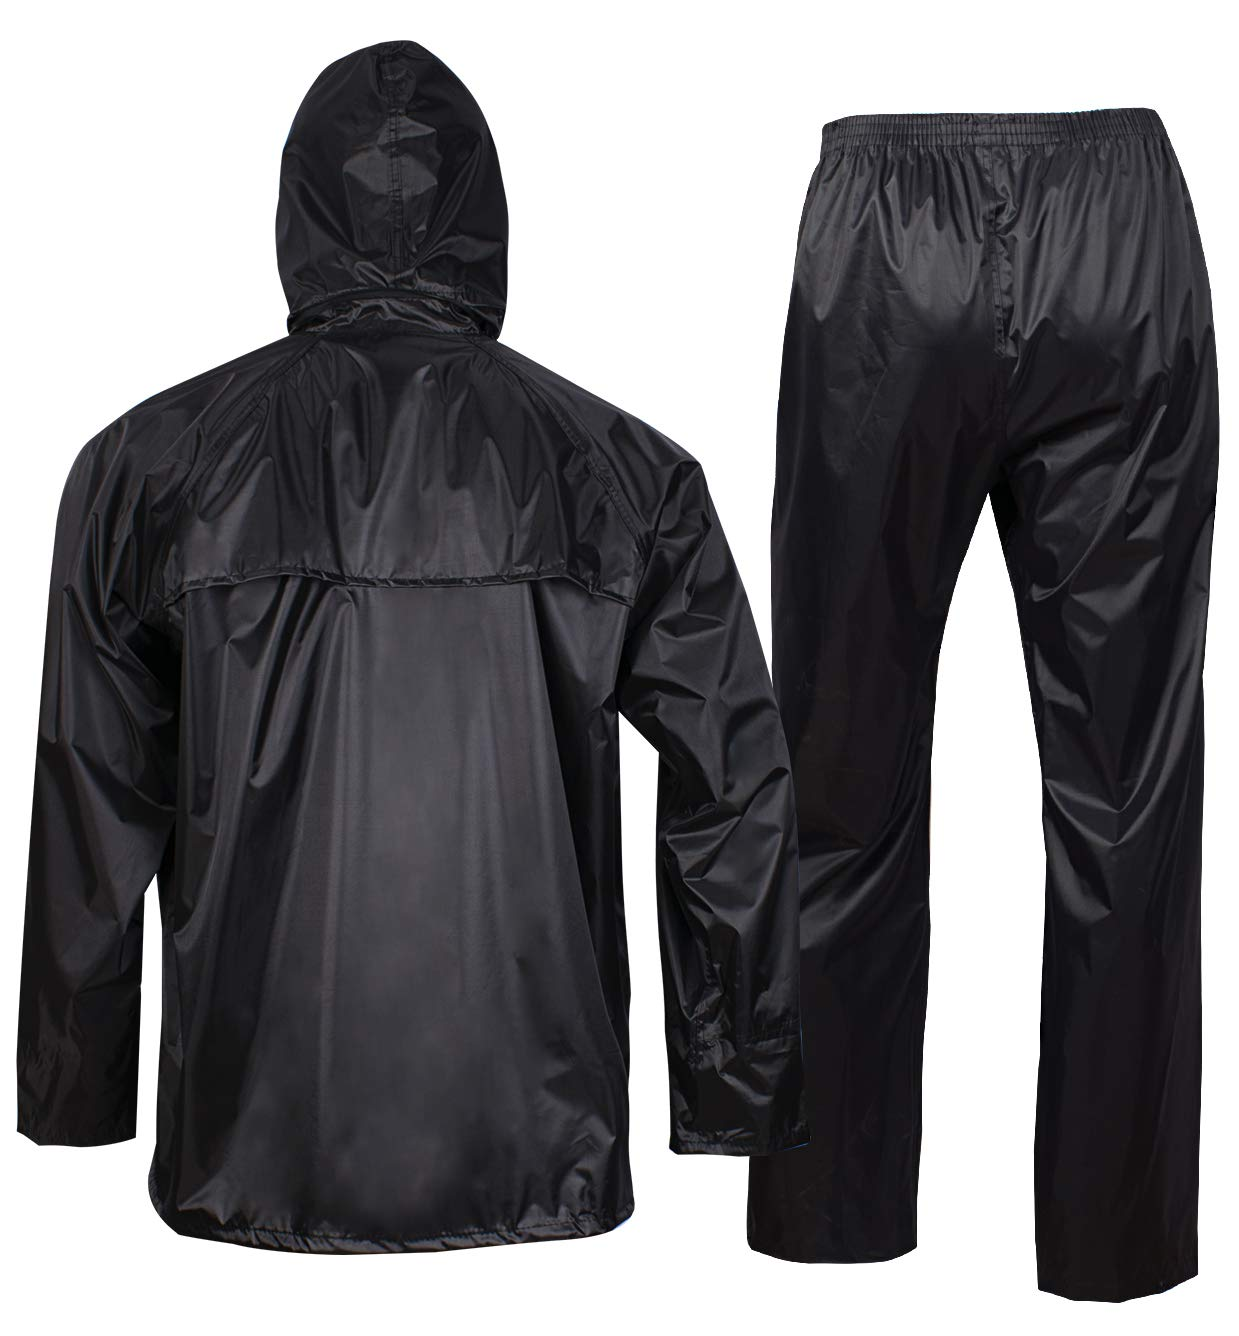 Rain Jacket with Pants for Men Women Waterproof Rain Coat 3-Pieces Ultra-Lite Suits (Large, Black) by FWG (Image #3)